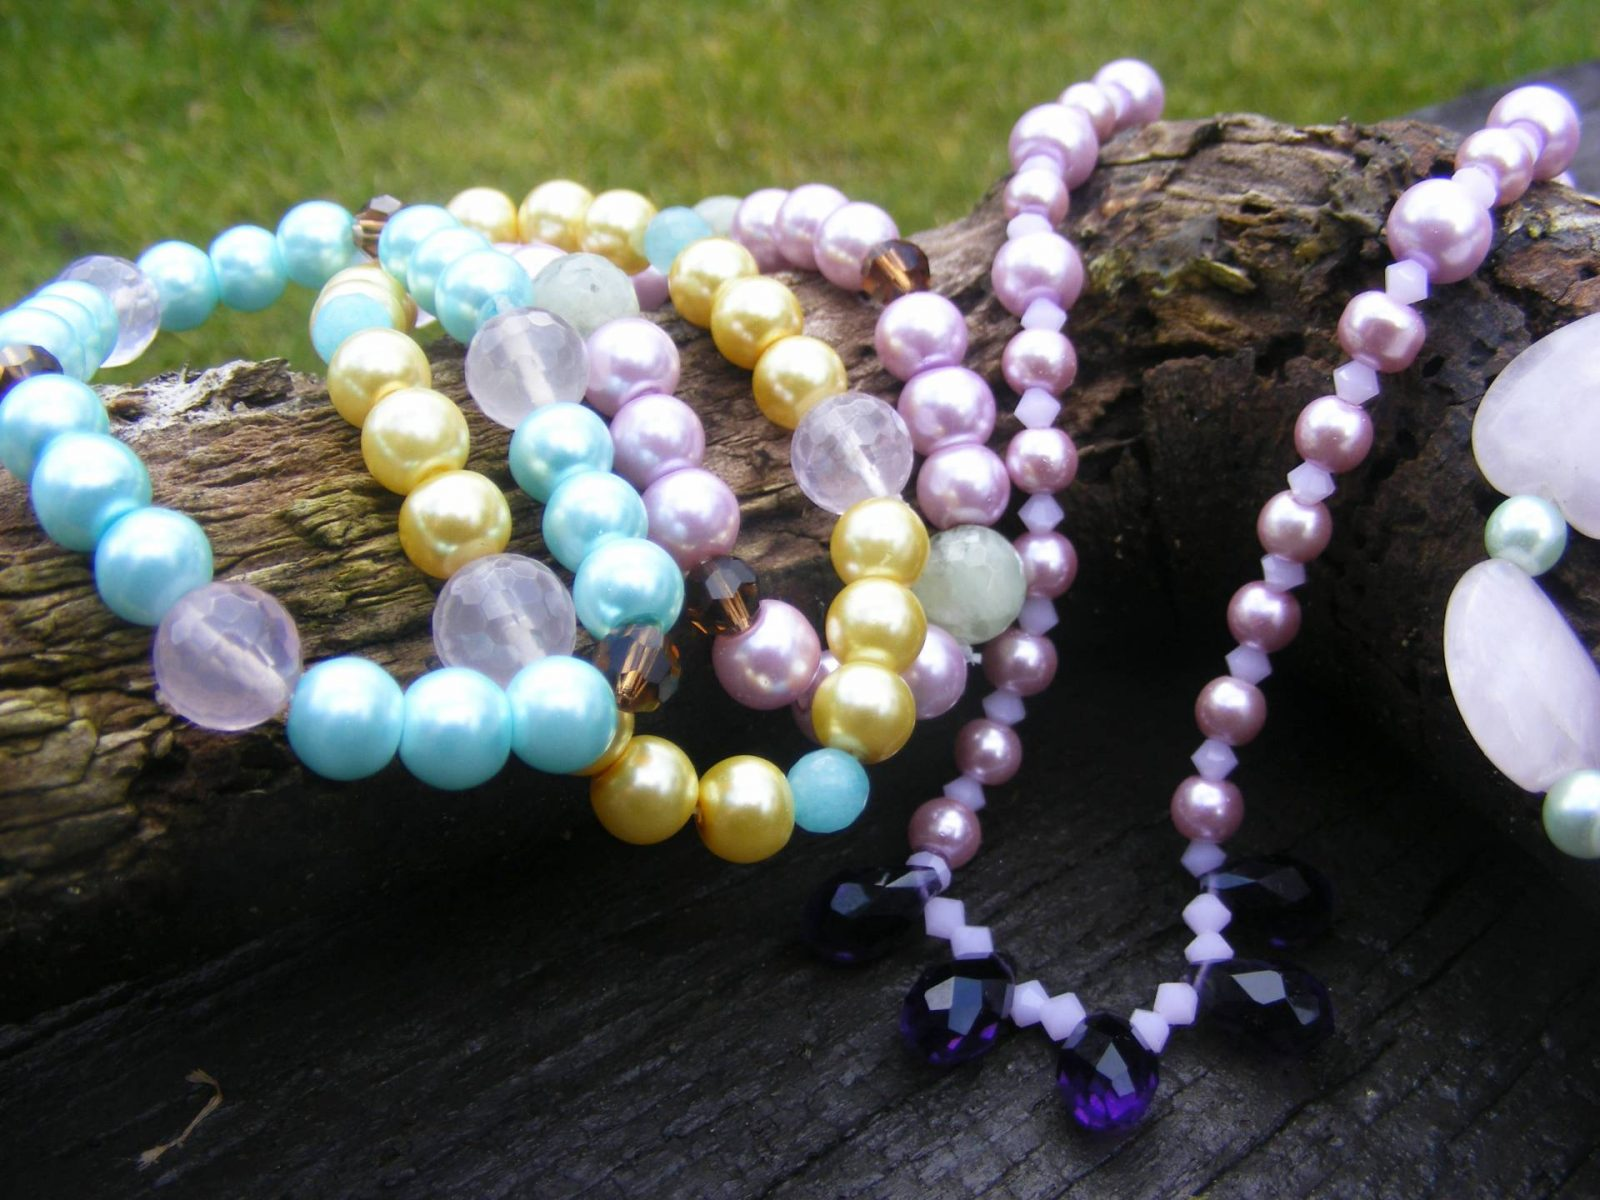 Handmade Jewellery for Spring, Pastel pearl bracelets and necklace